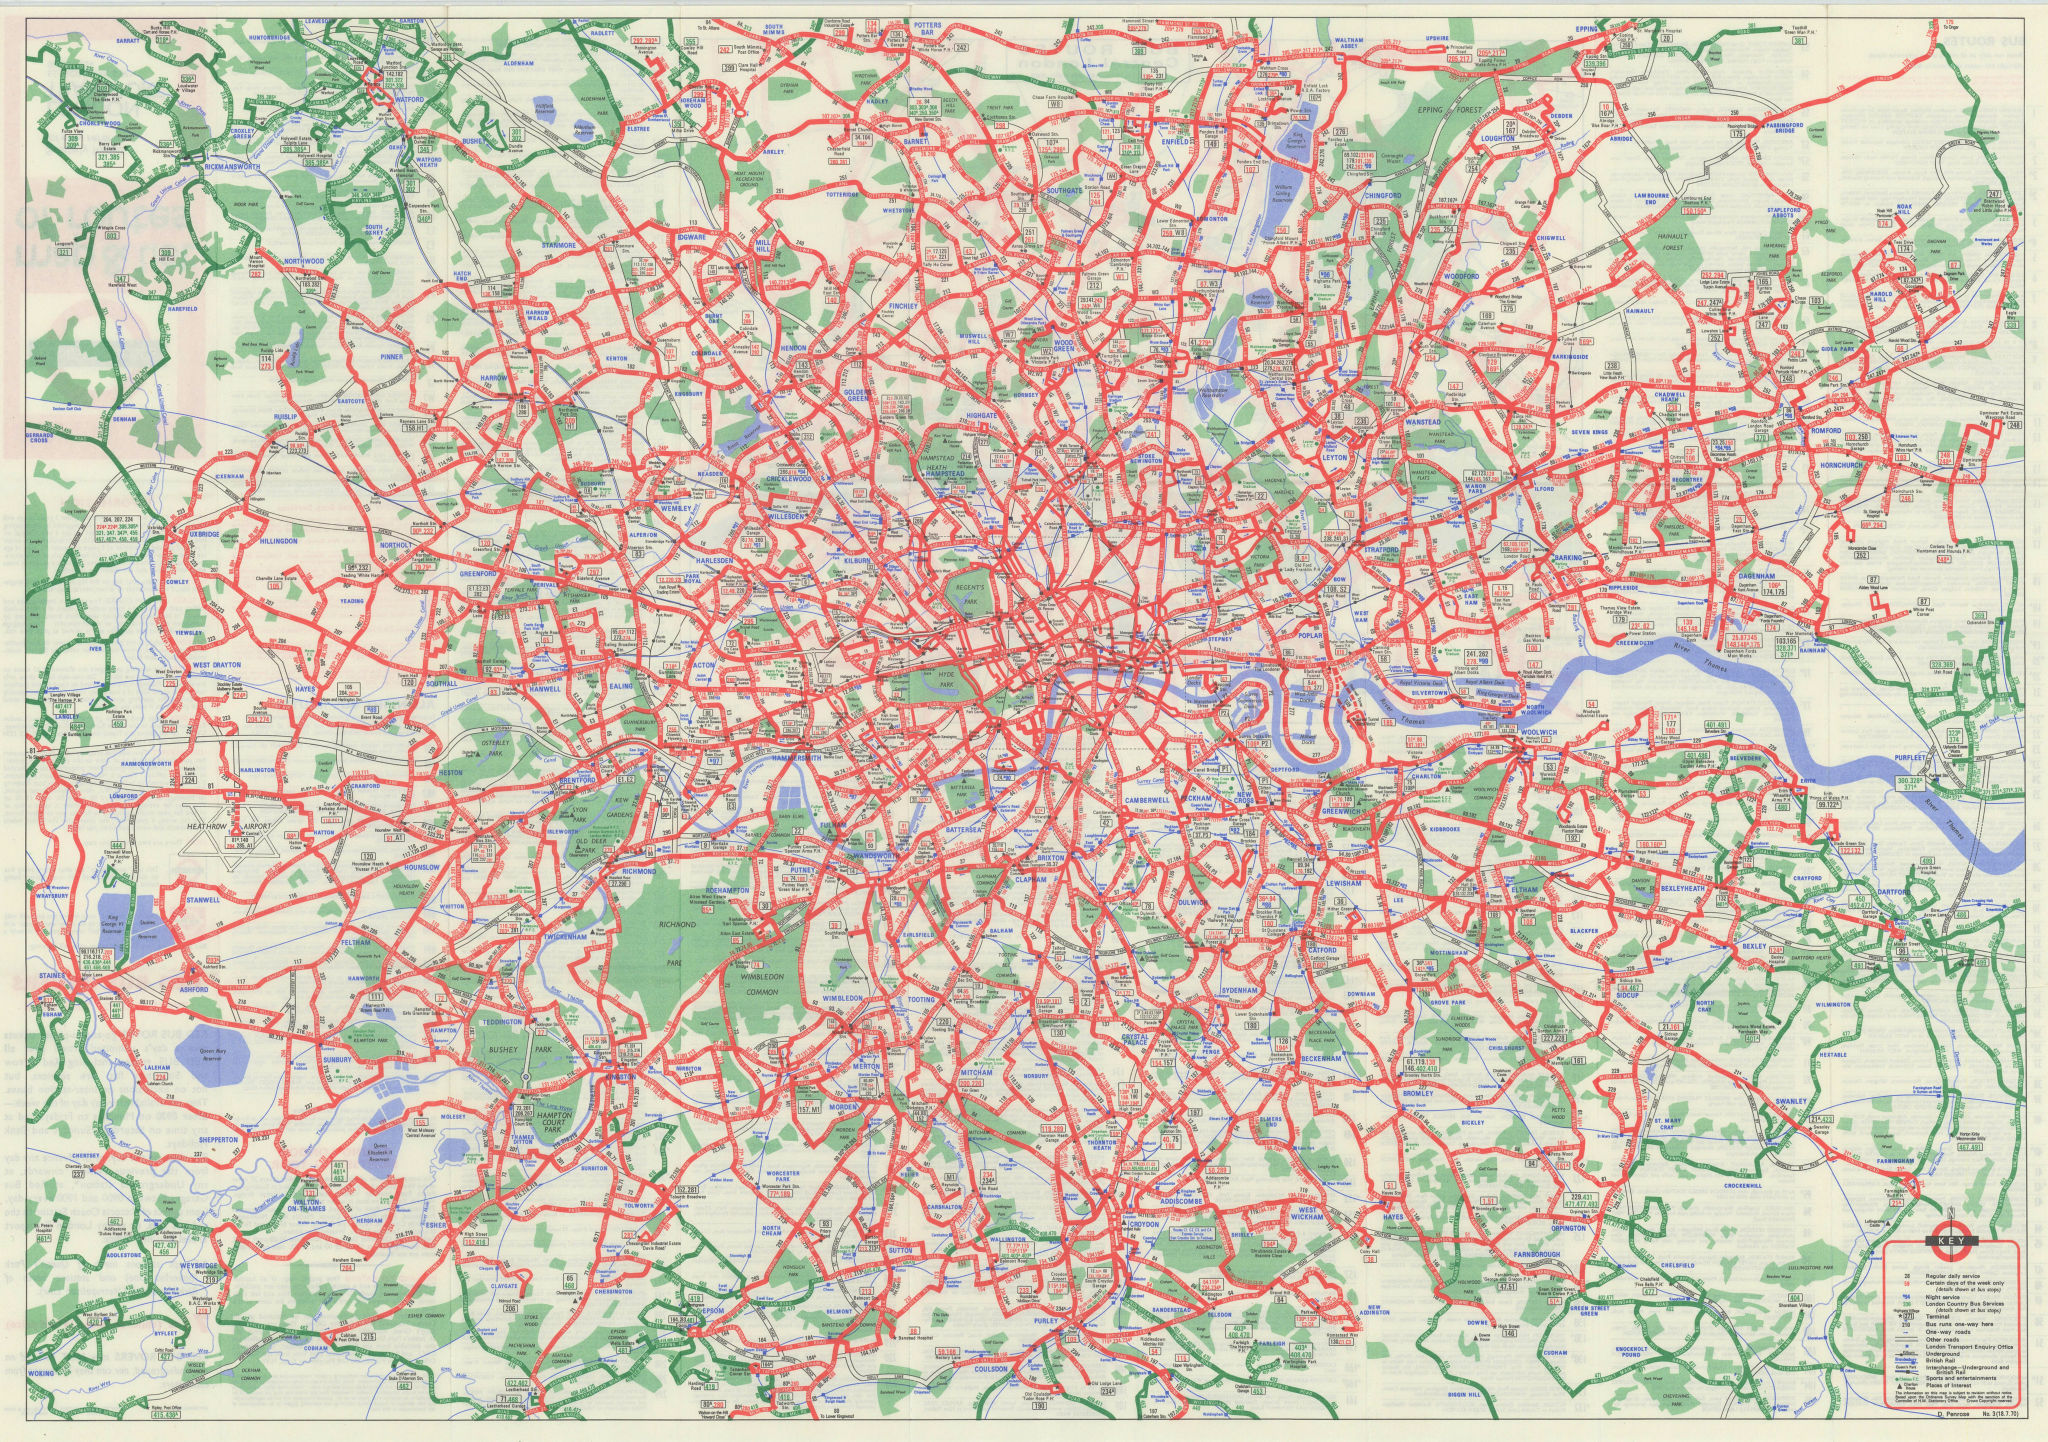 London Transport - London Buses map & list of routes. PENROSE #3 1970 old